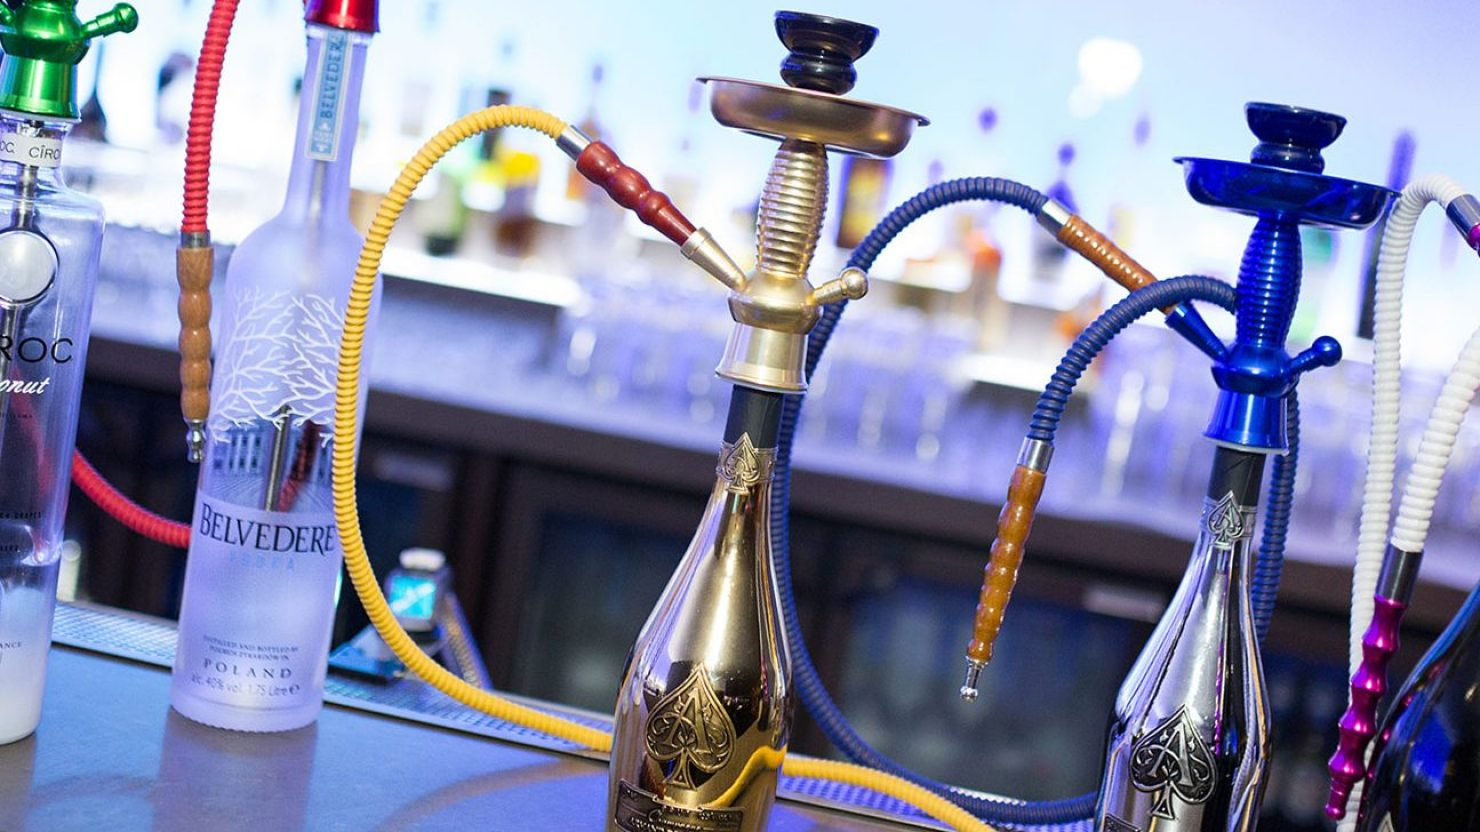 shisha pipe by exhale shisha marketing imagery